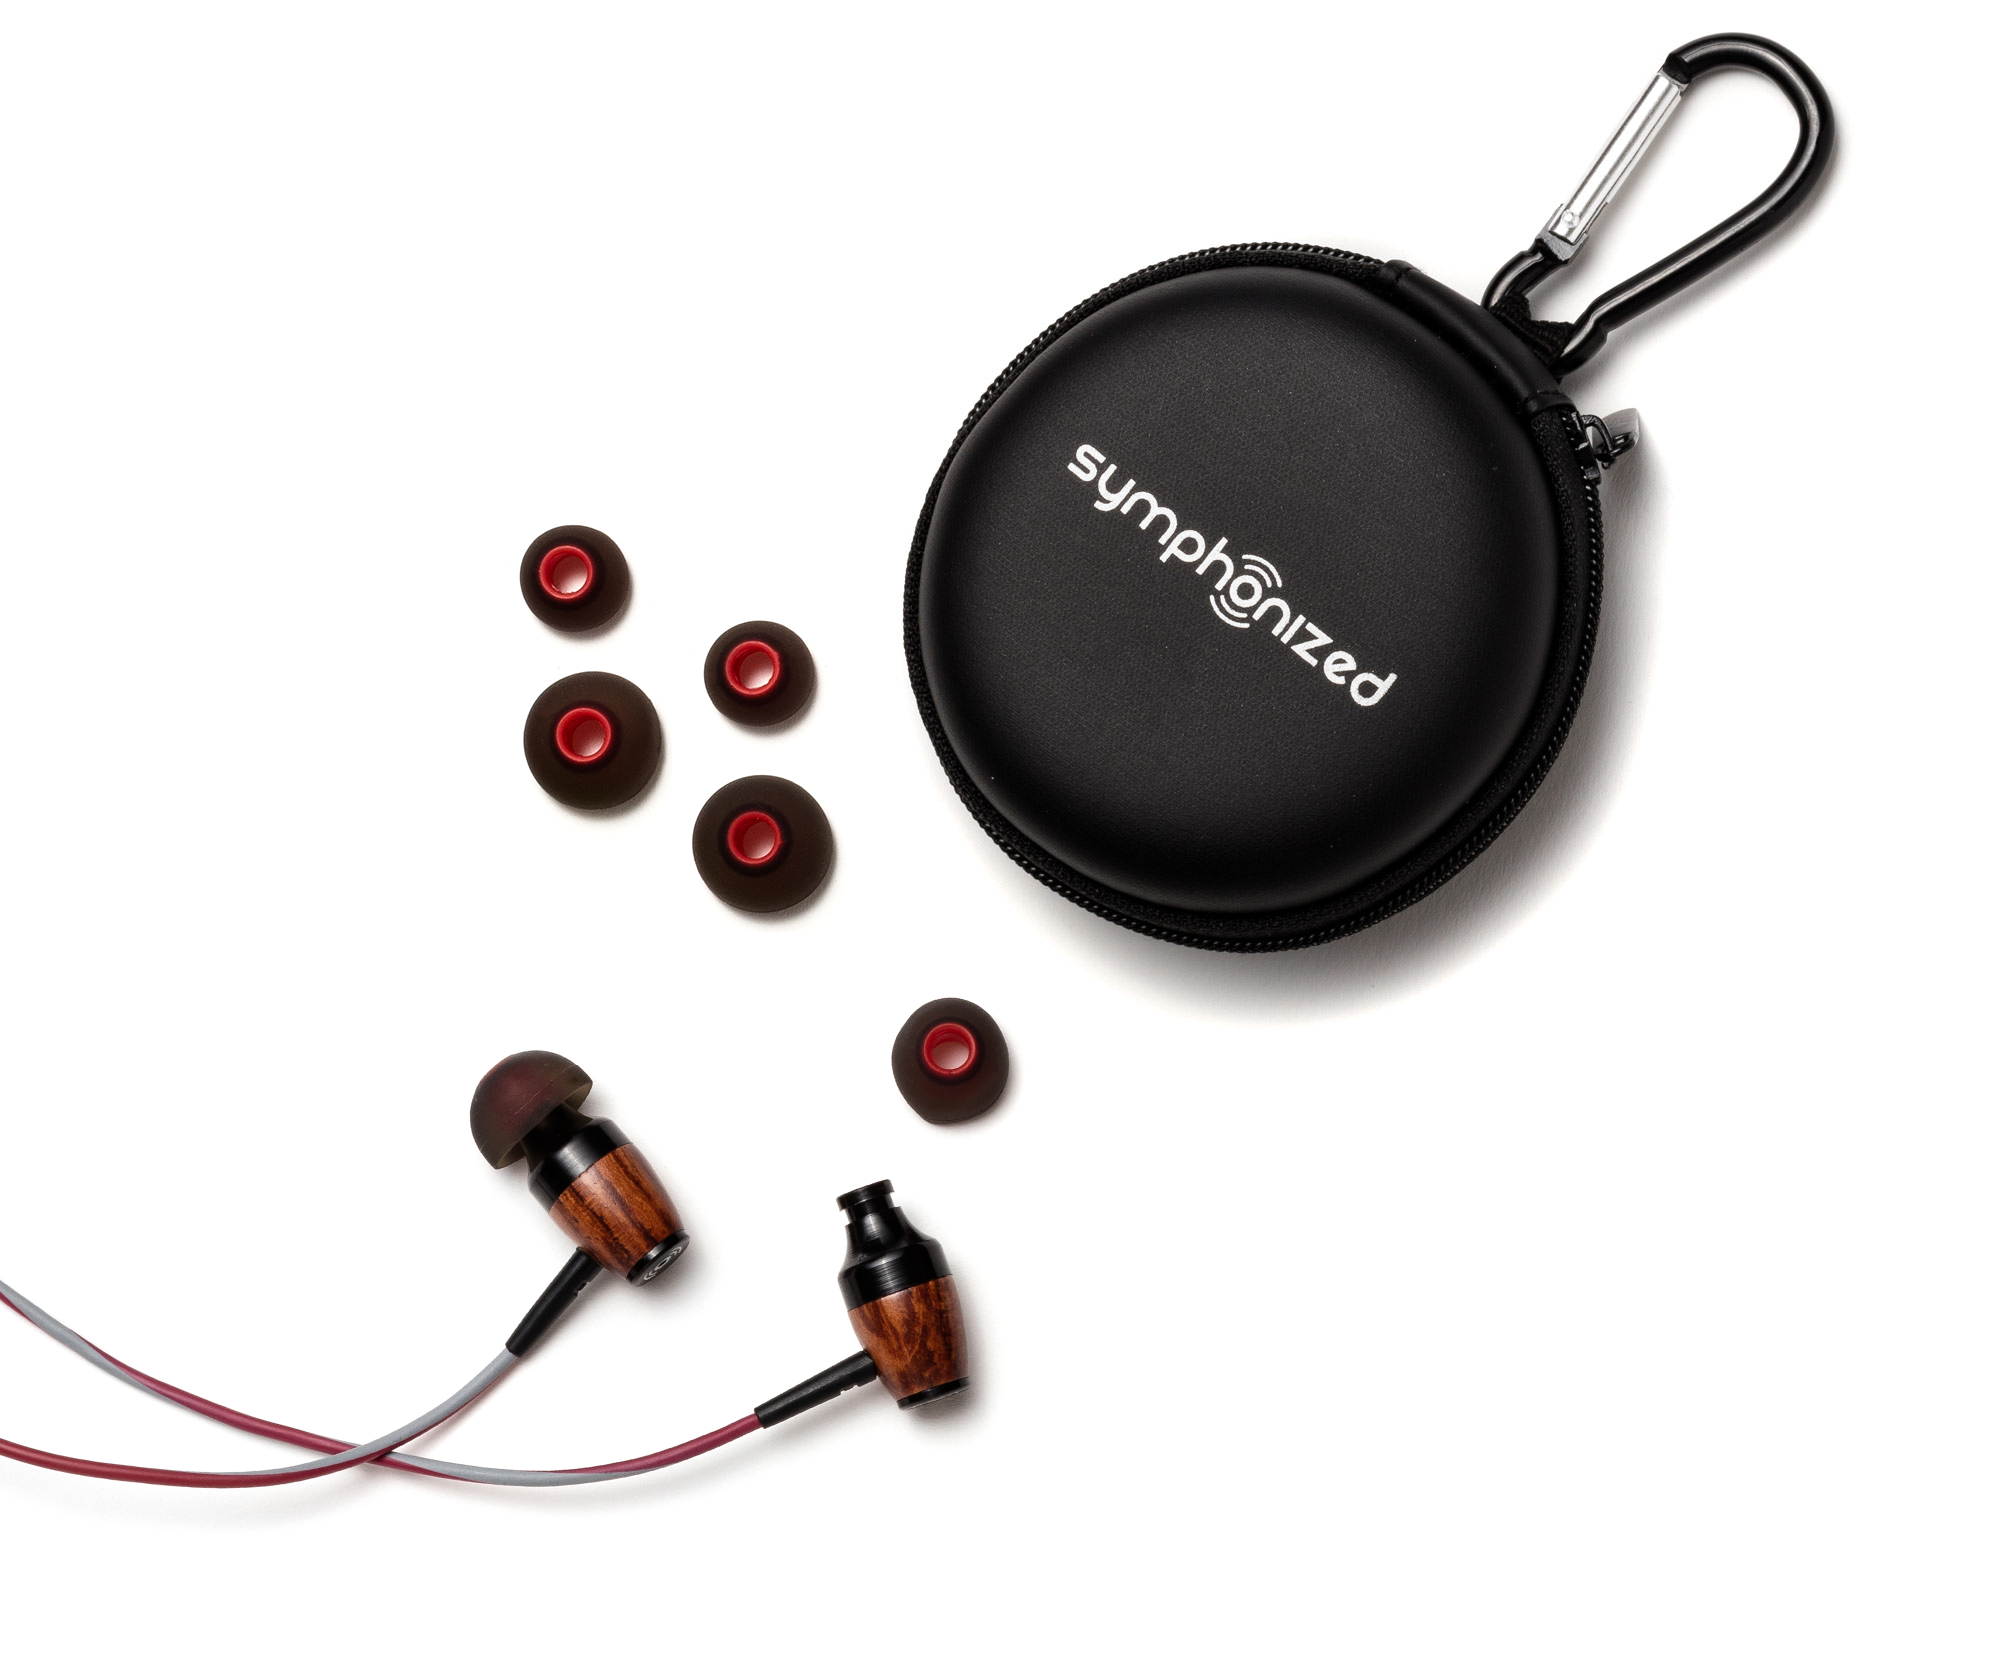 DRM In-Ear Wood Headphones - Gray and Red